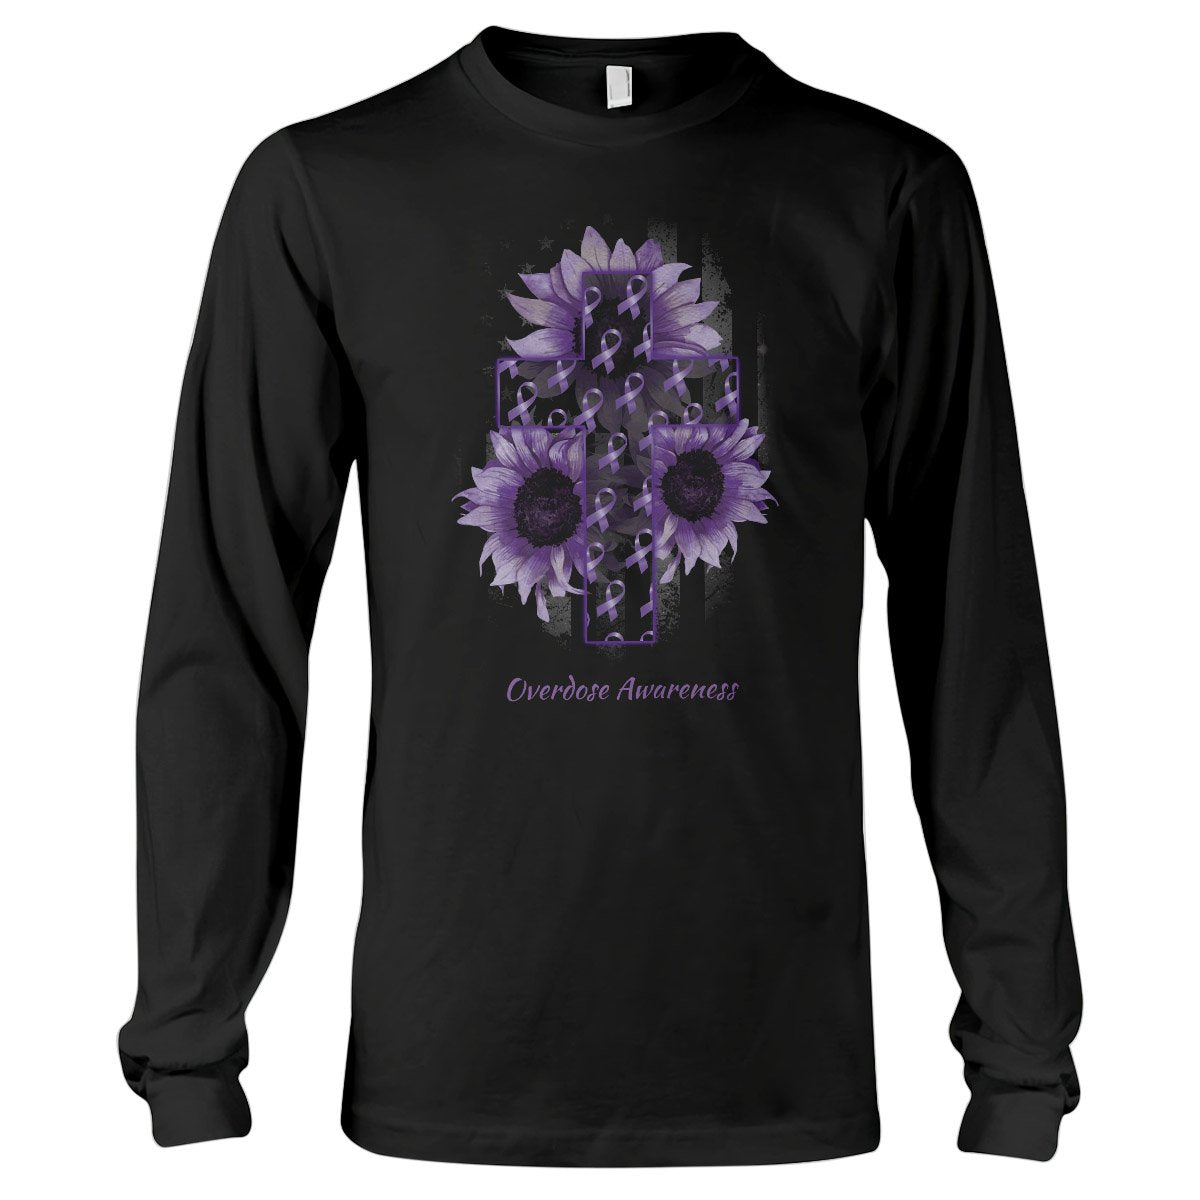 American Flag And The Cross Overdose Awareness Long Sleeve T-Shirt